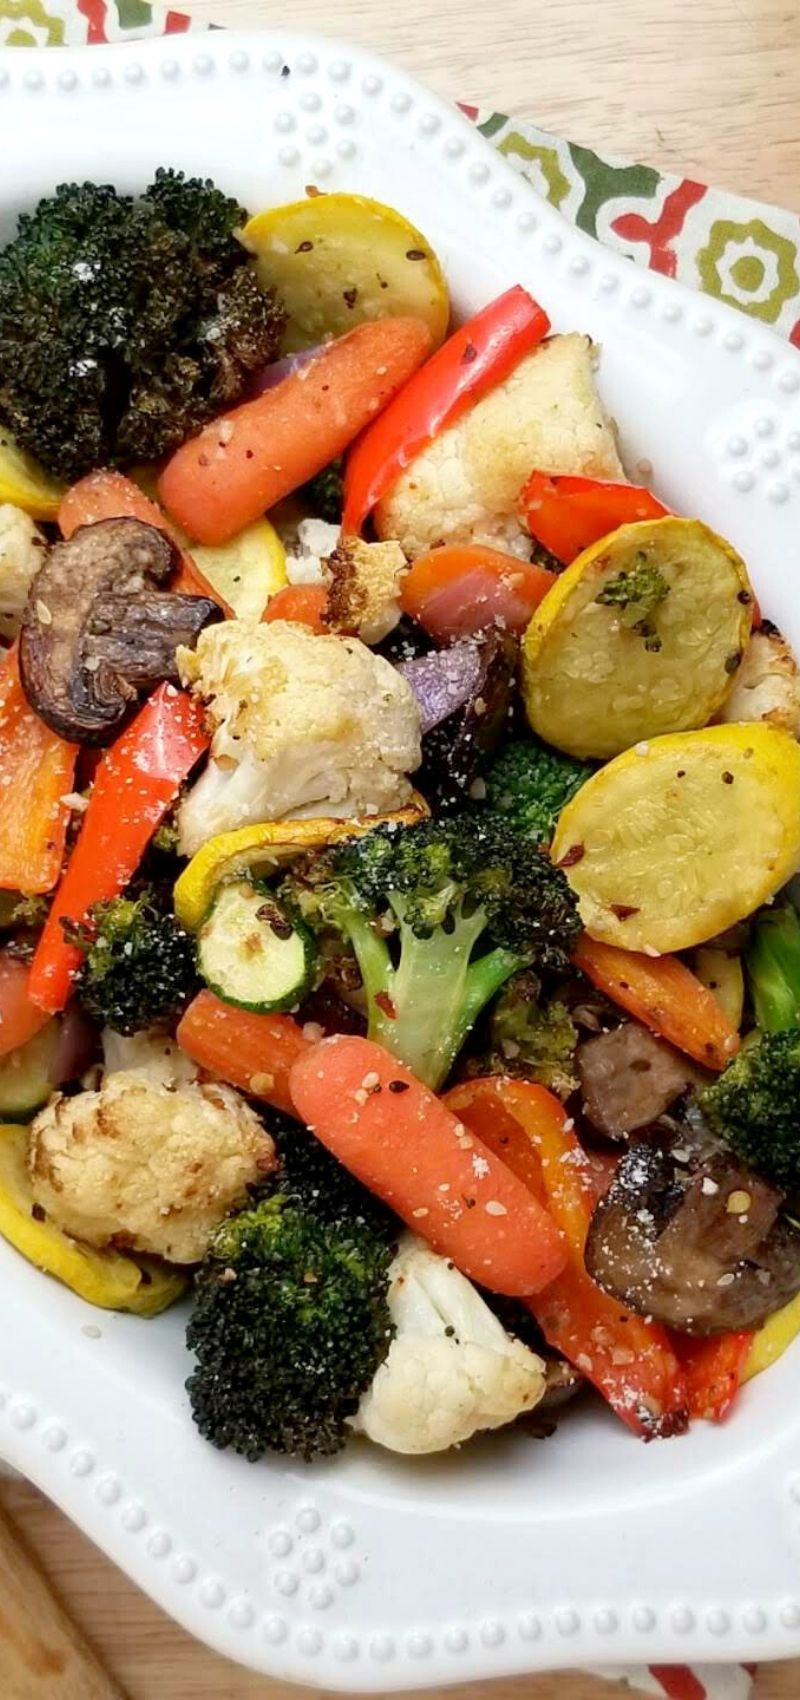 Delicious Air Fryer Roasted Vegetables Recipe in 2020